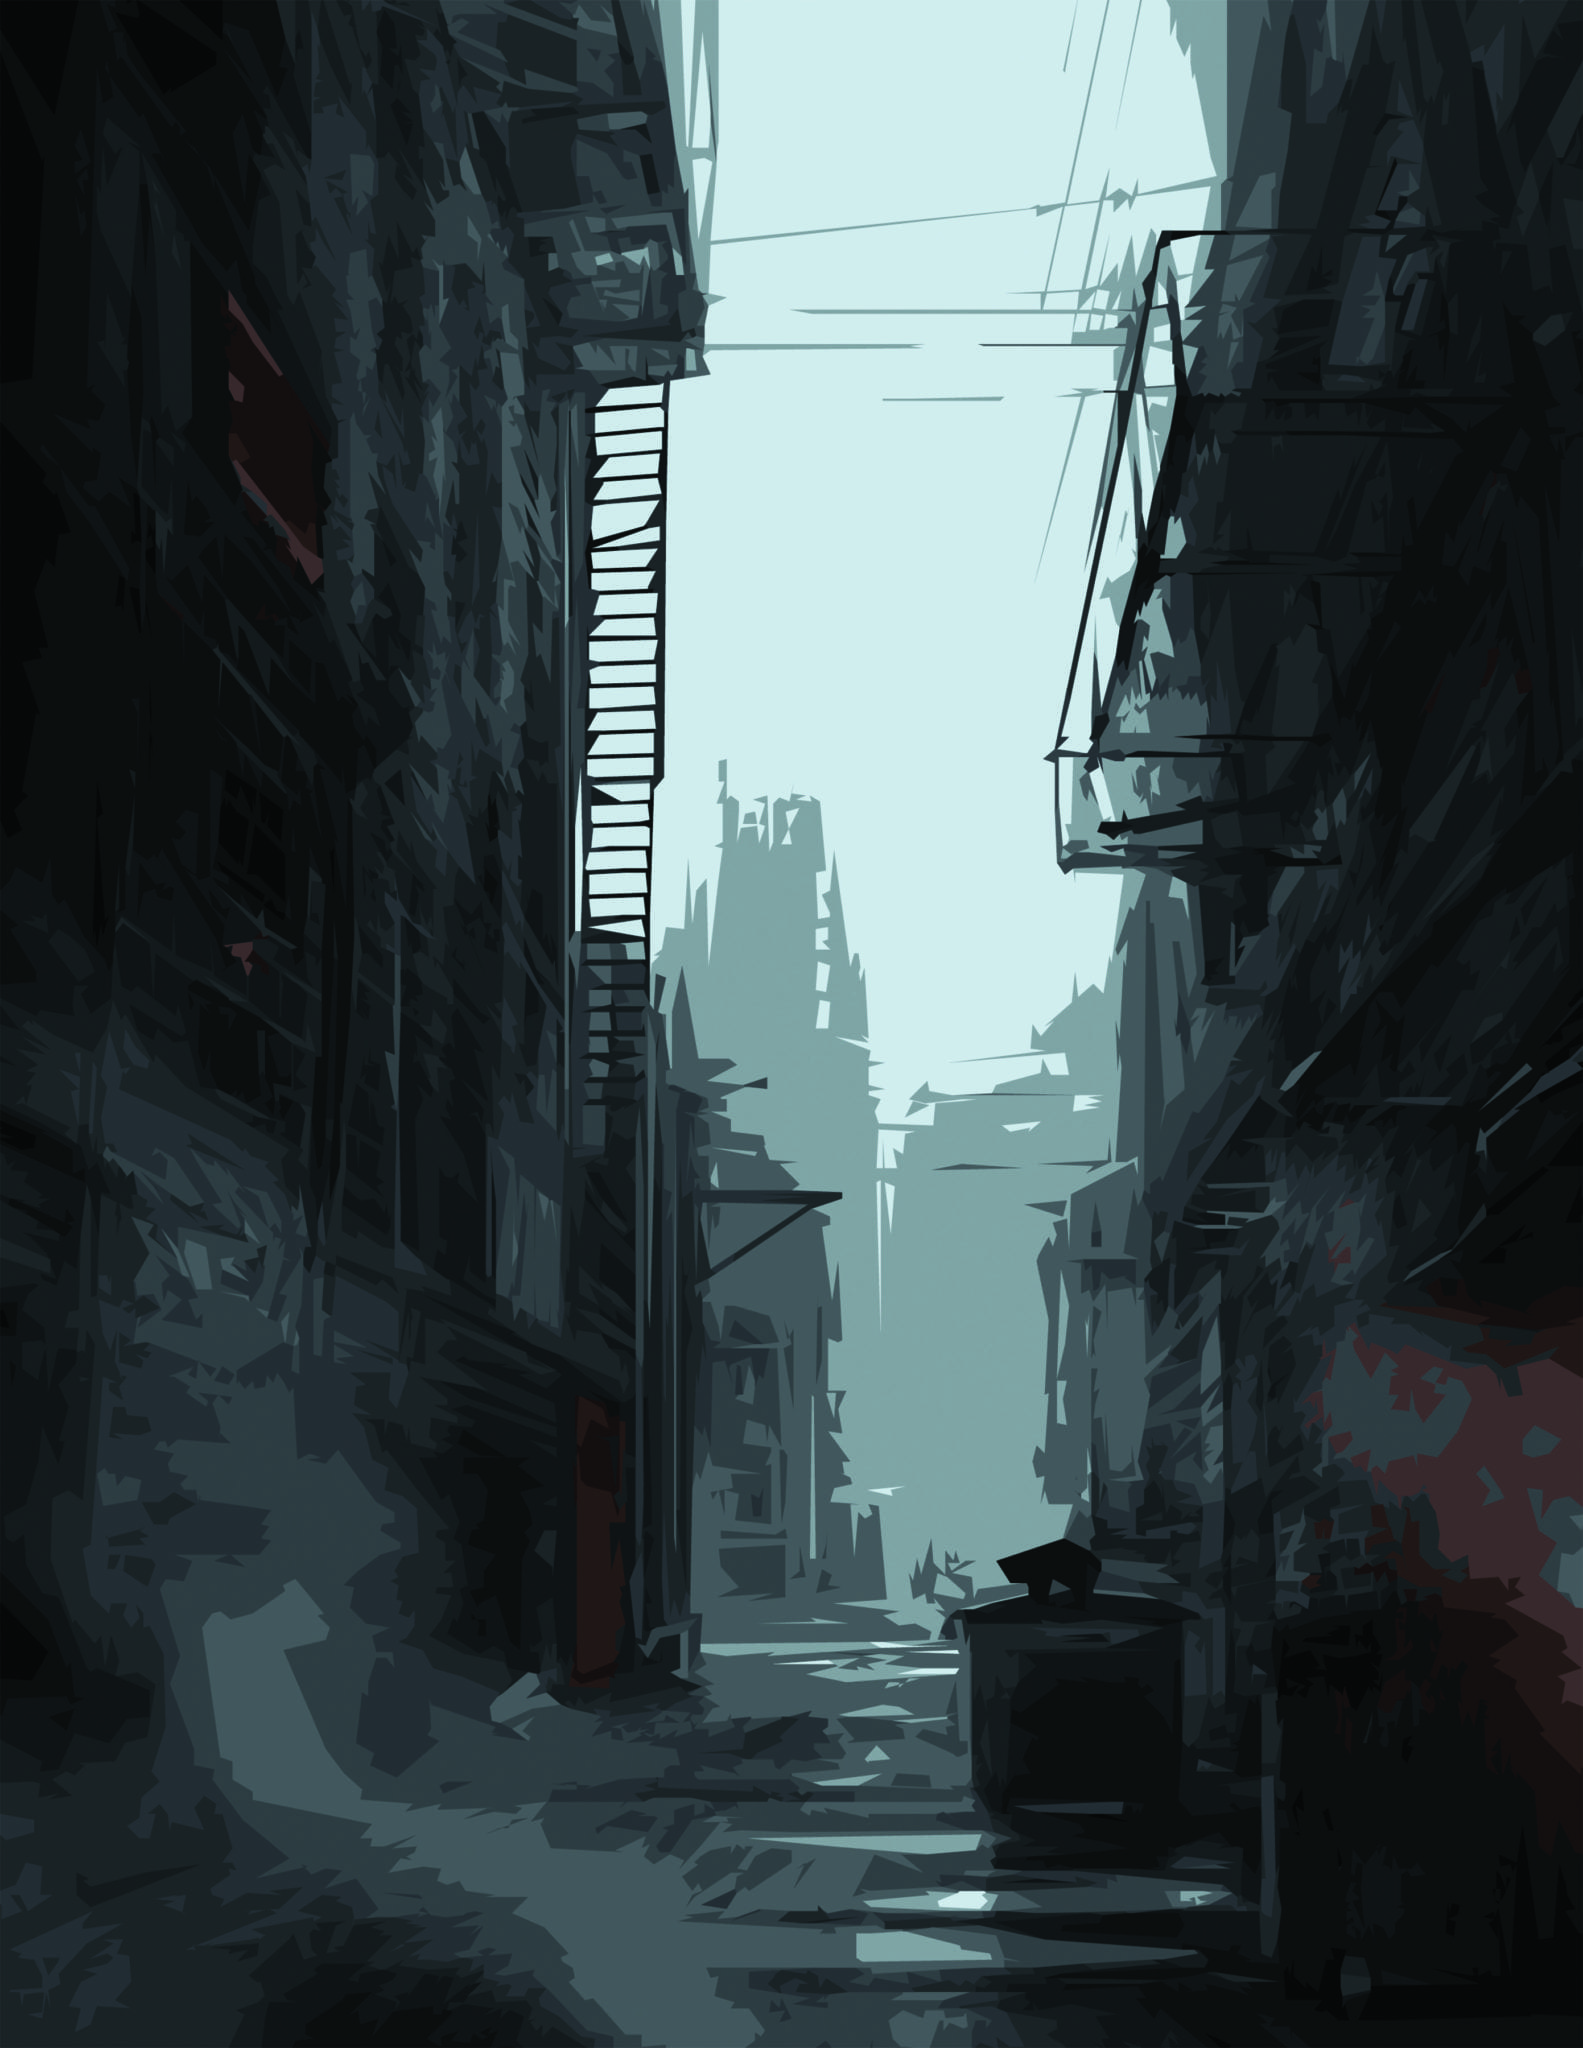 Alleyway by Shaun Gillies